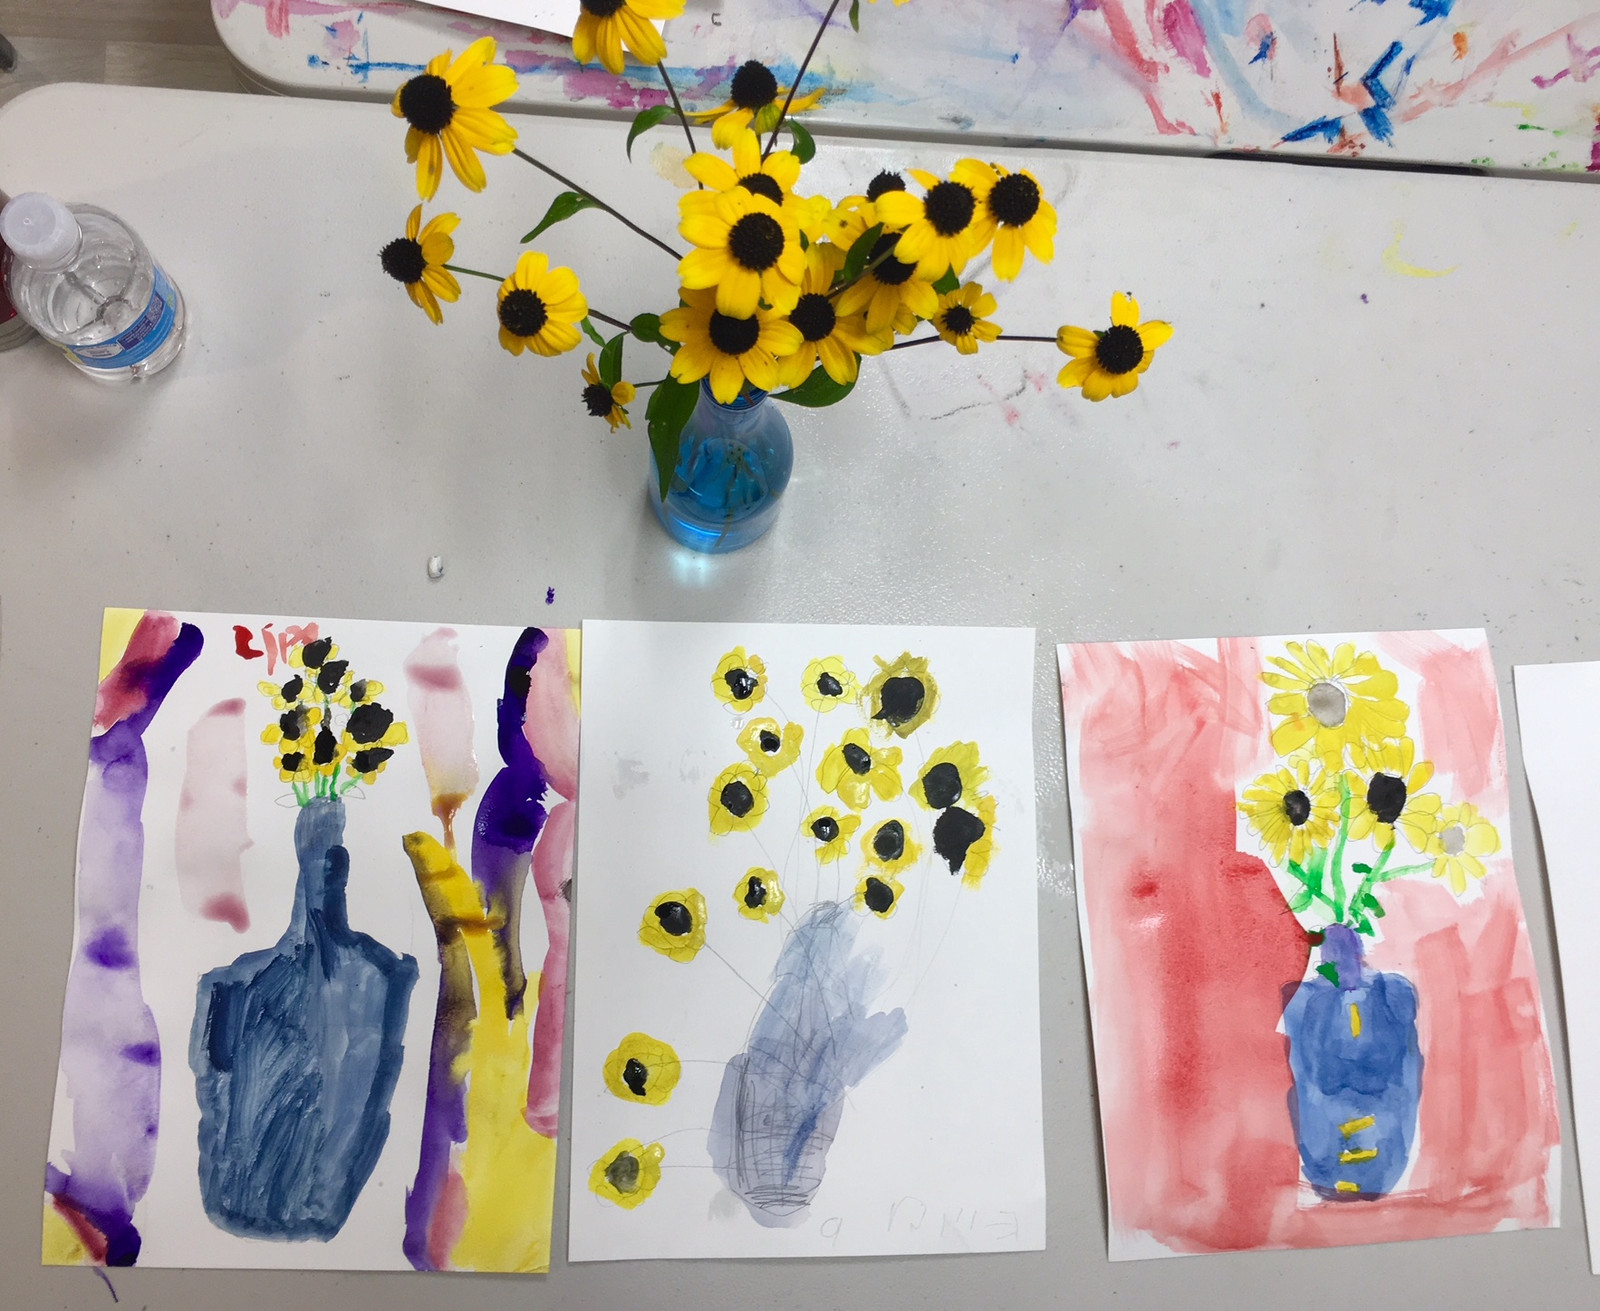 Fullscreen Page | The Art Room | Mundelein | Art classes with Stacee